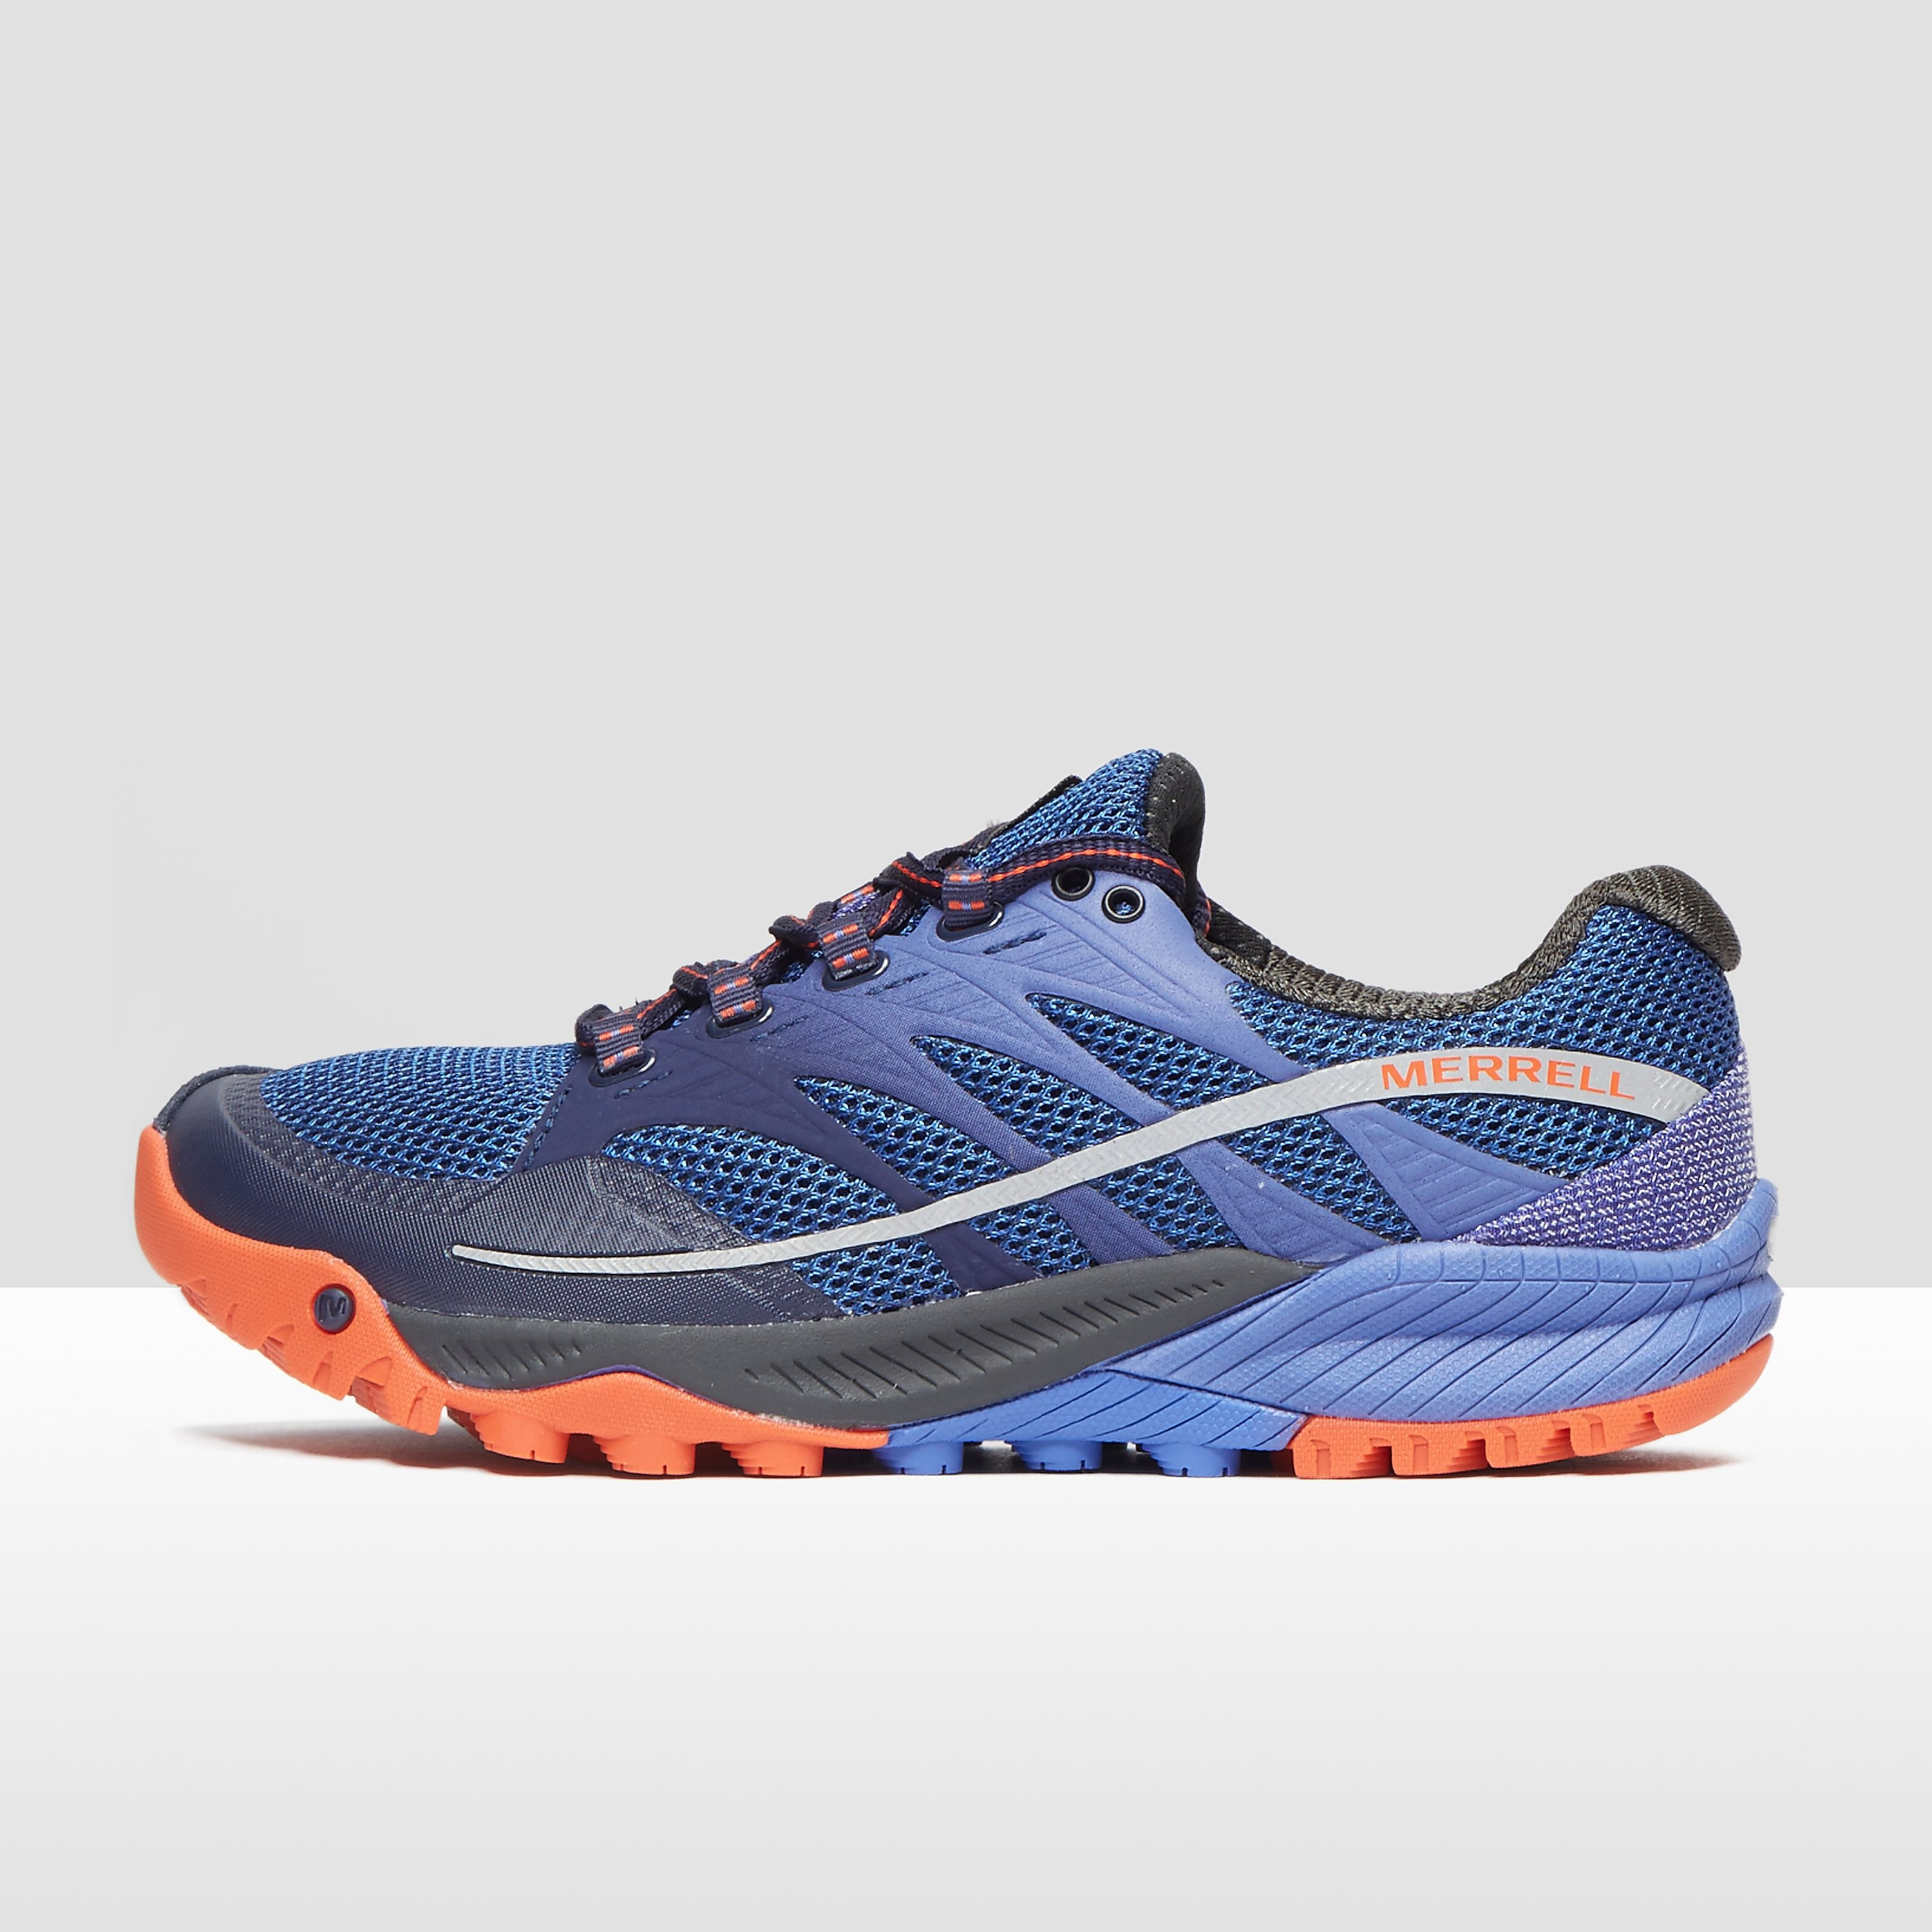 Merrell Women's ALL OUT CHARGE Running Shoes